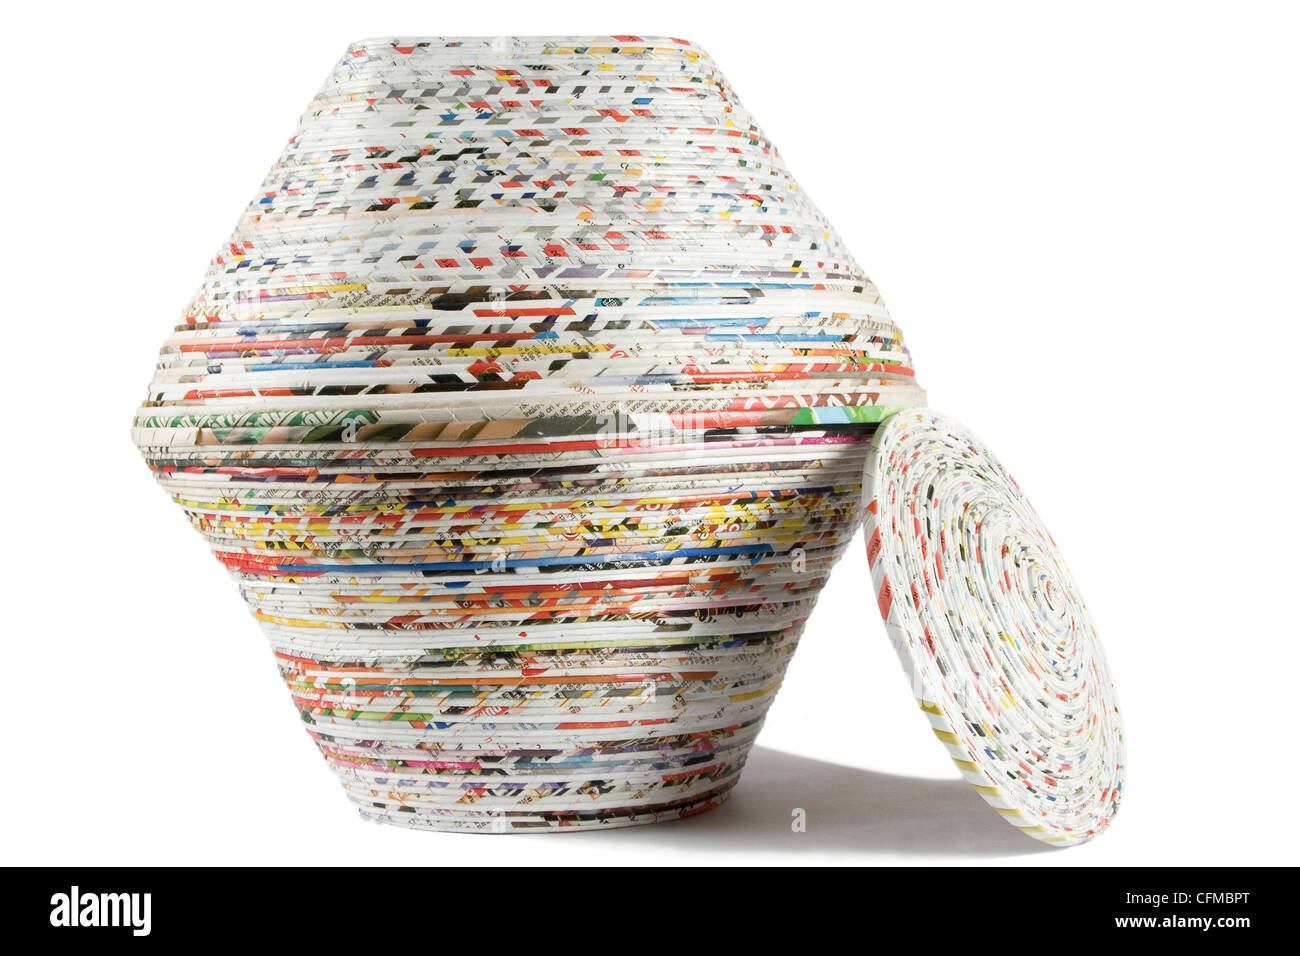 colored basket made from recycled paper on white background - Stock Image